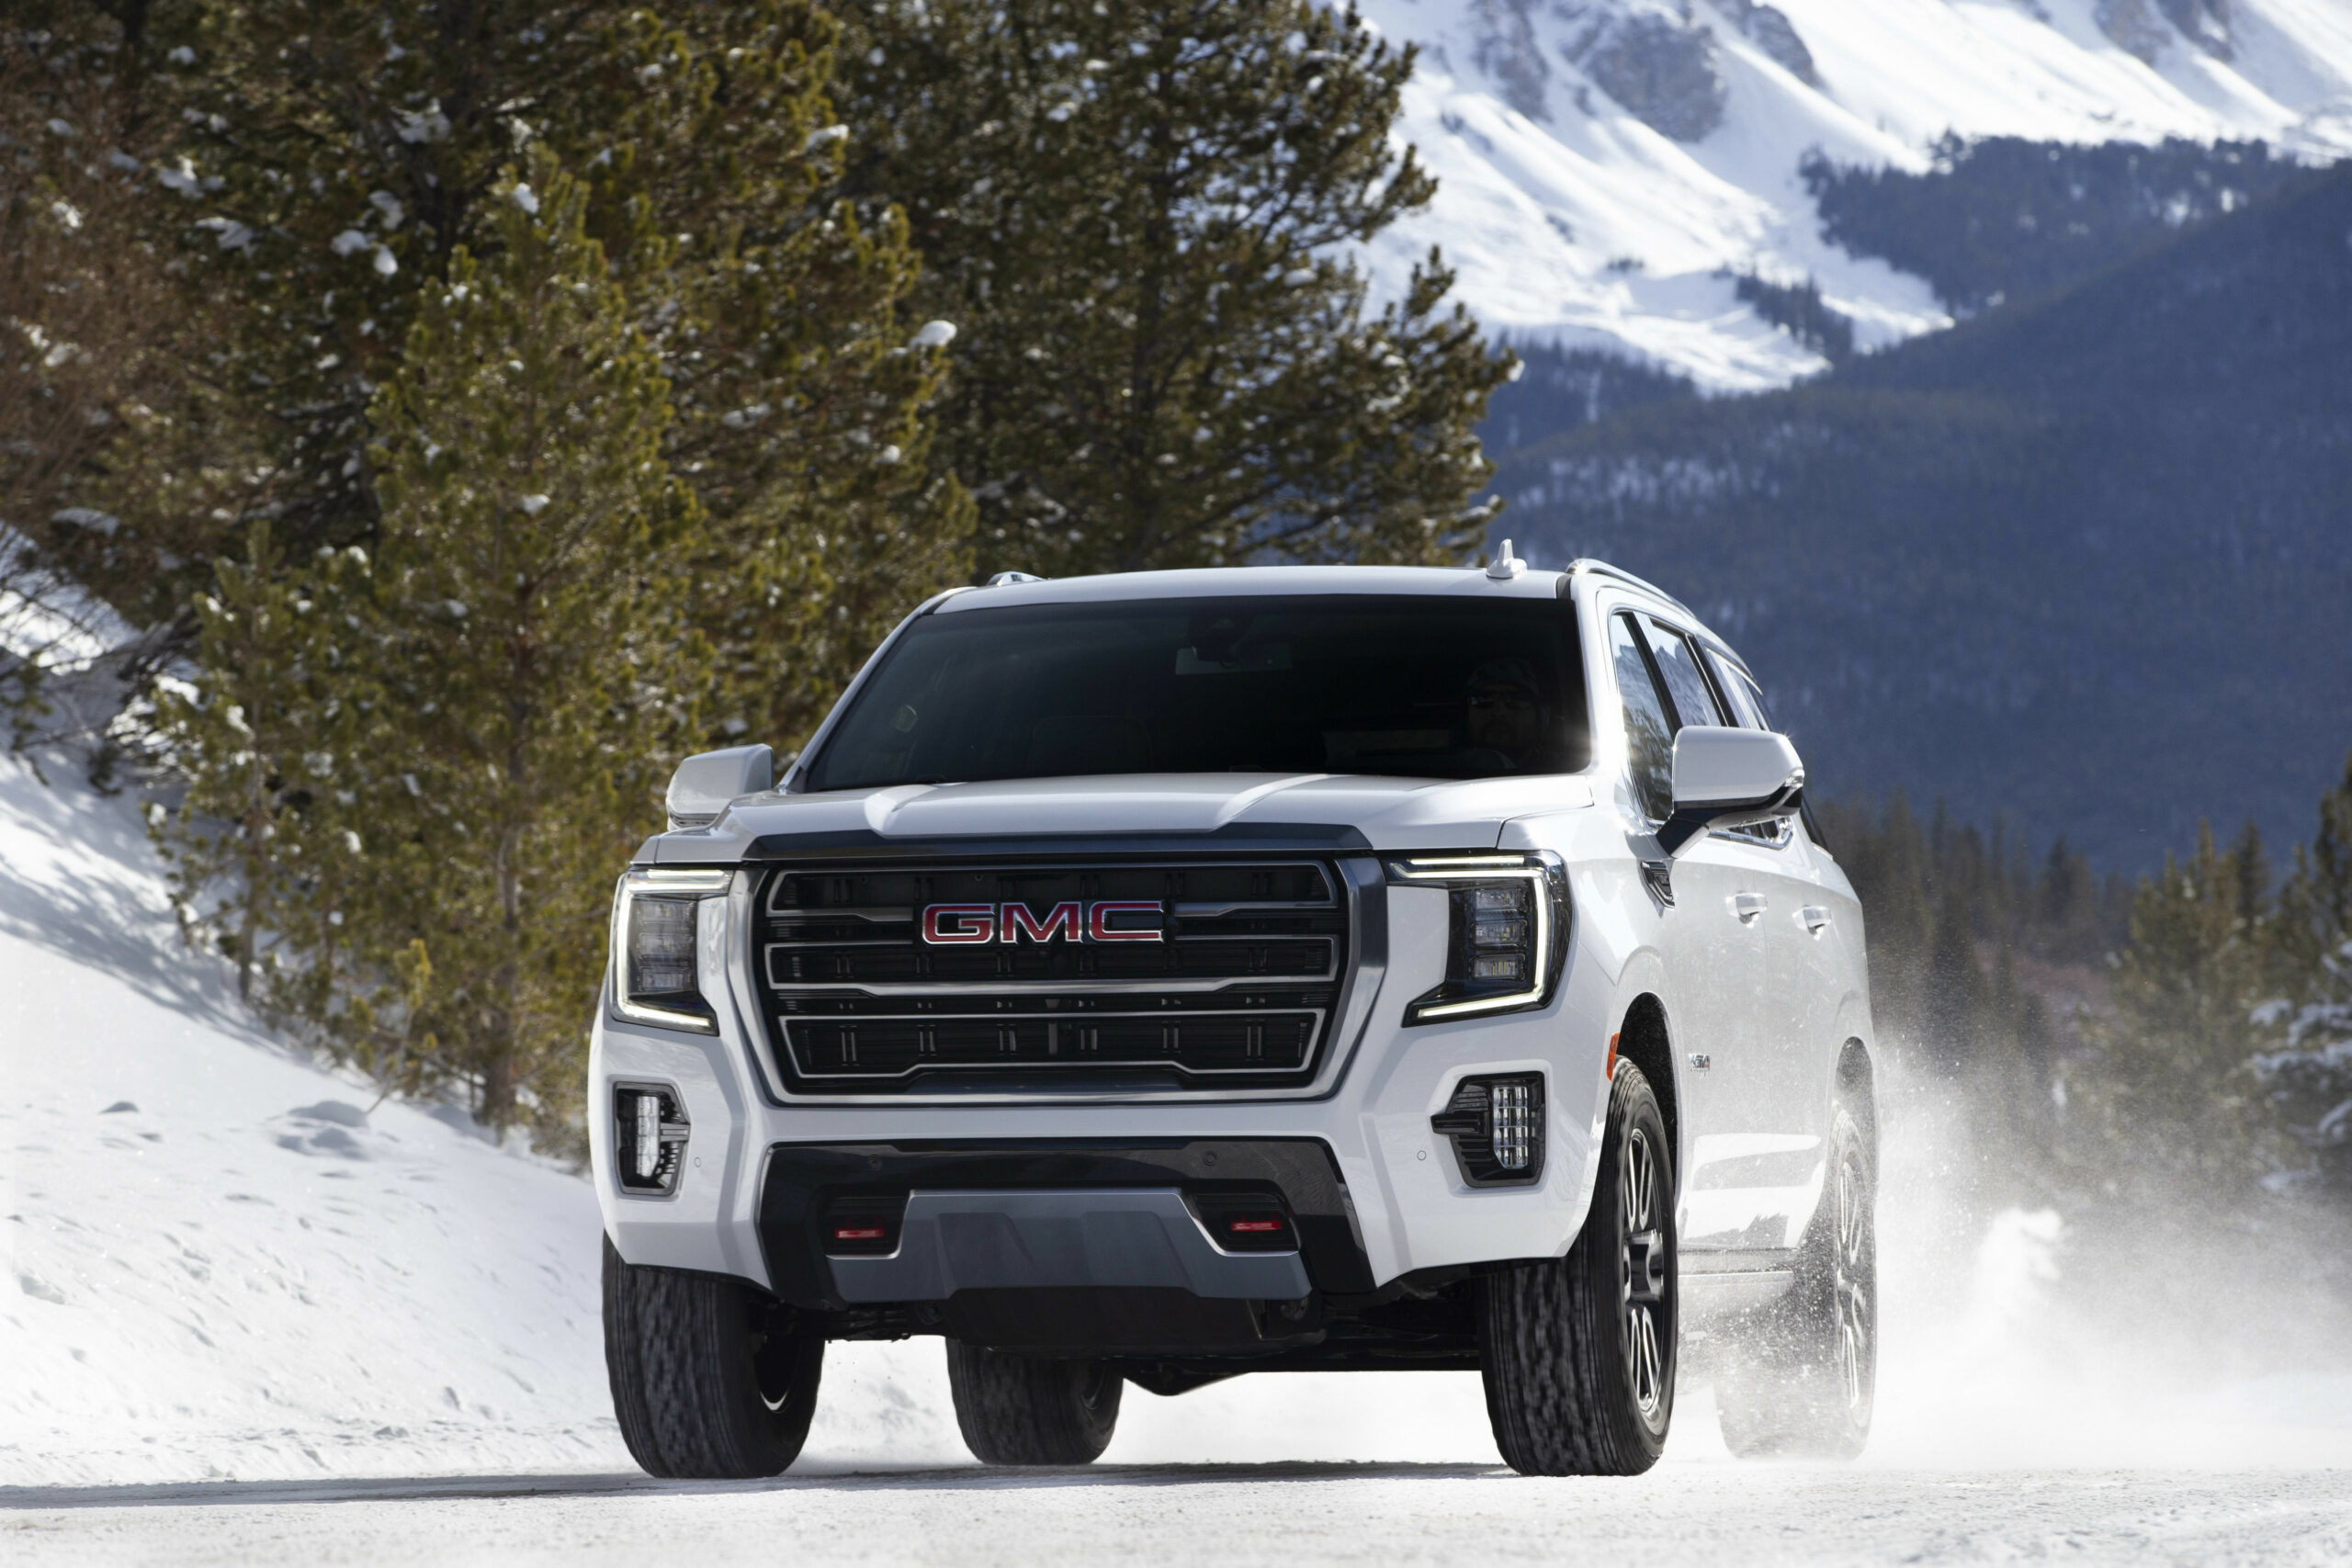 General Motors unveils new 6 GMC Yukon, Yukon XL SUVs